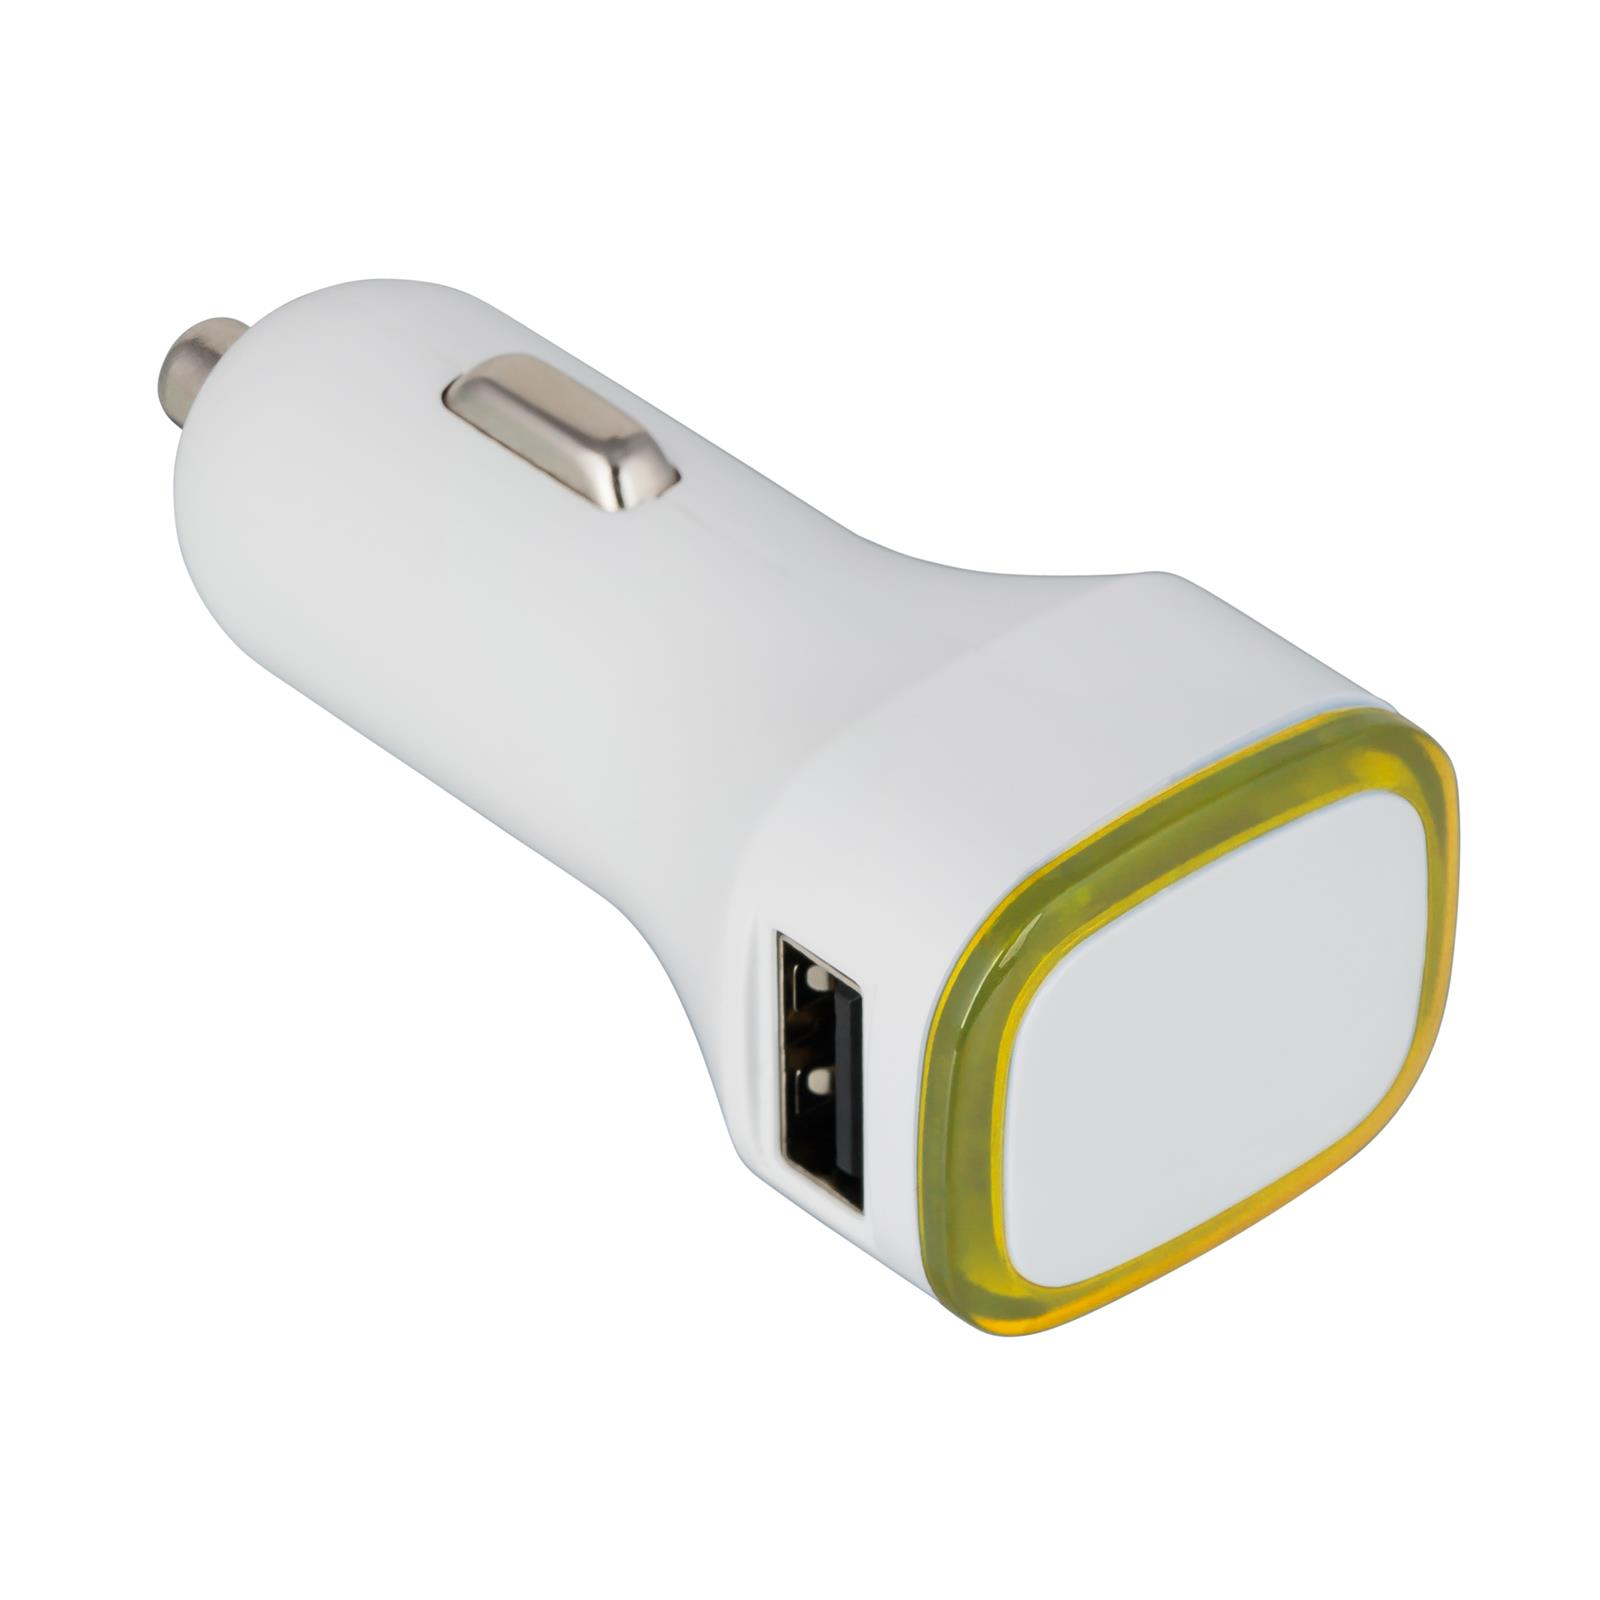 USB Autoladeadapter REFLECTS-COLLECTION 500